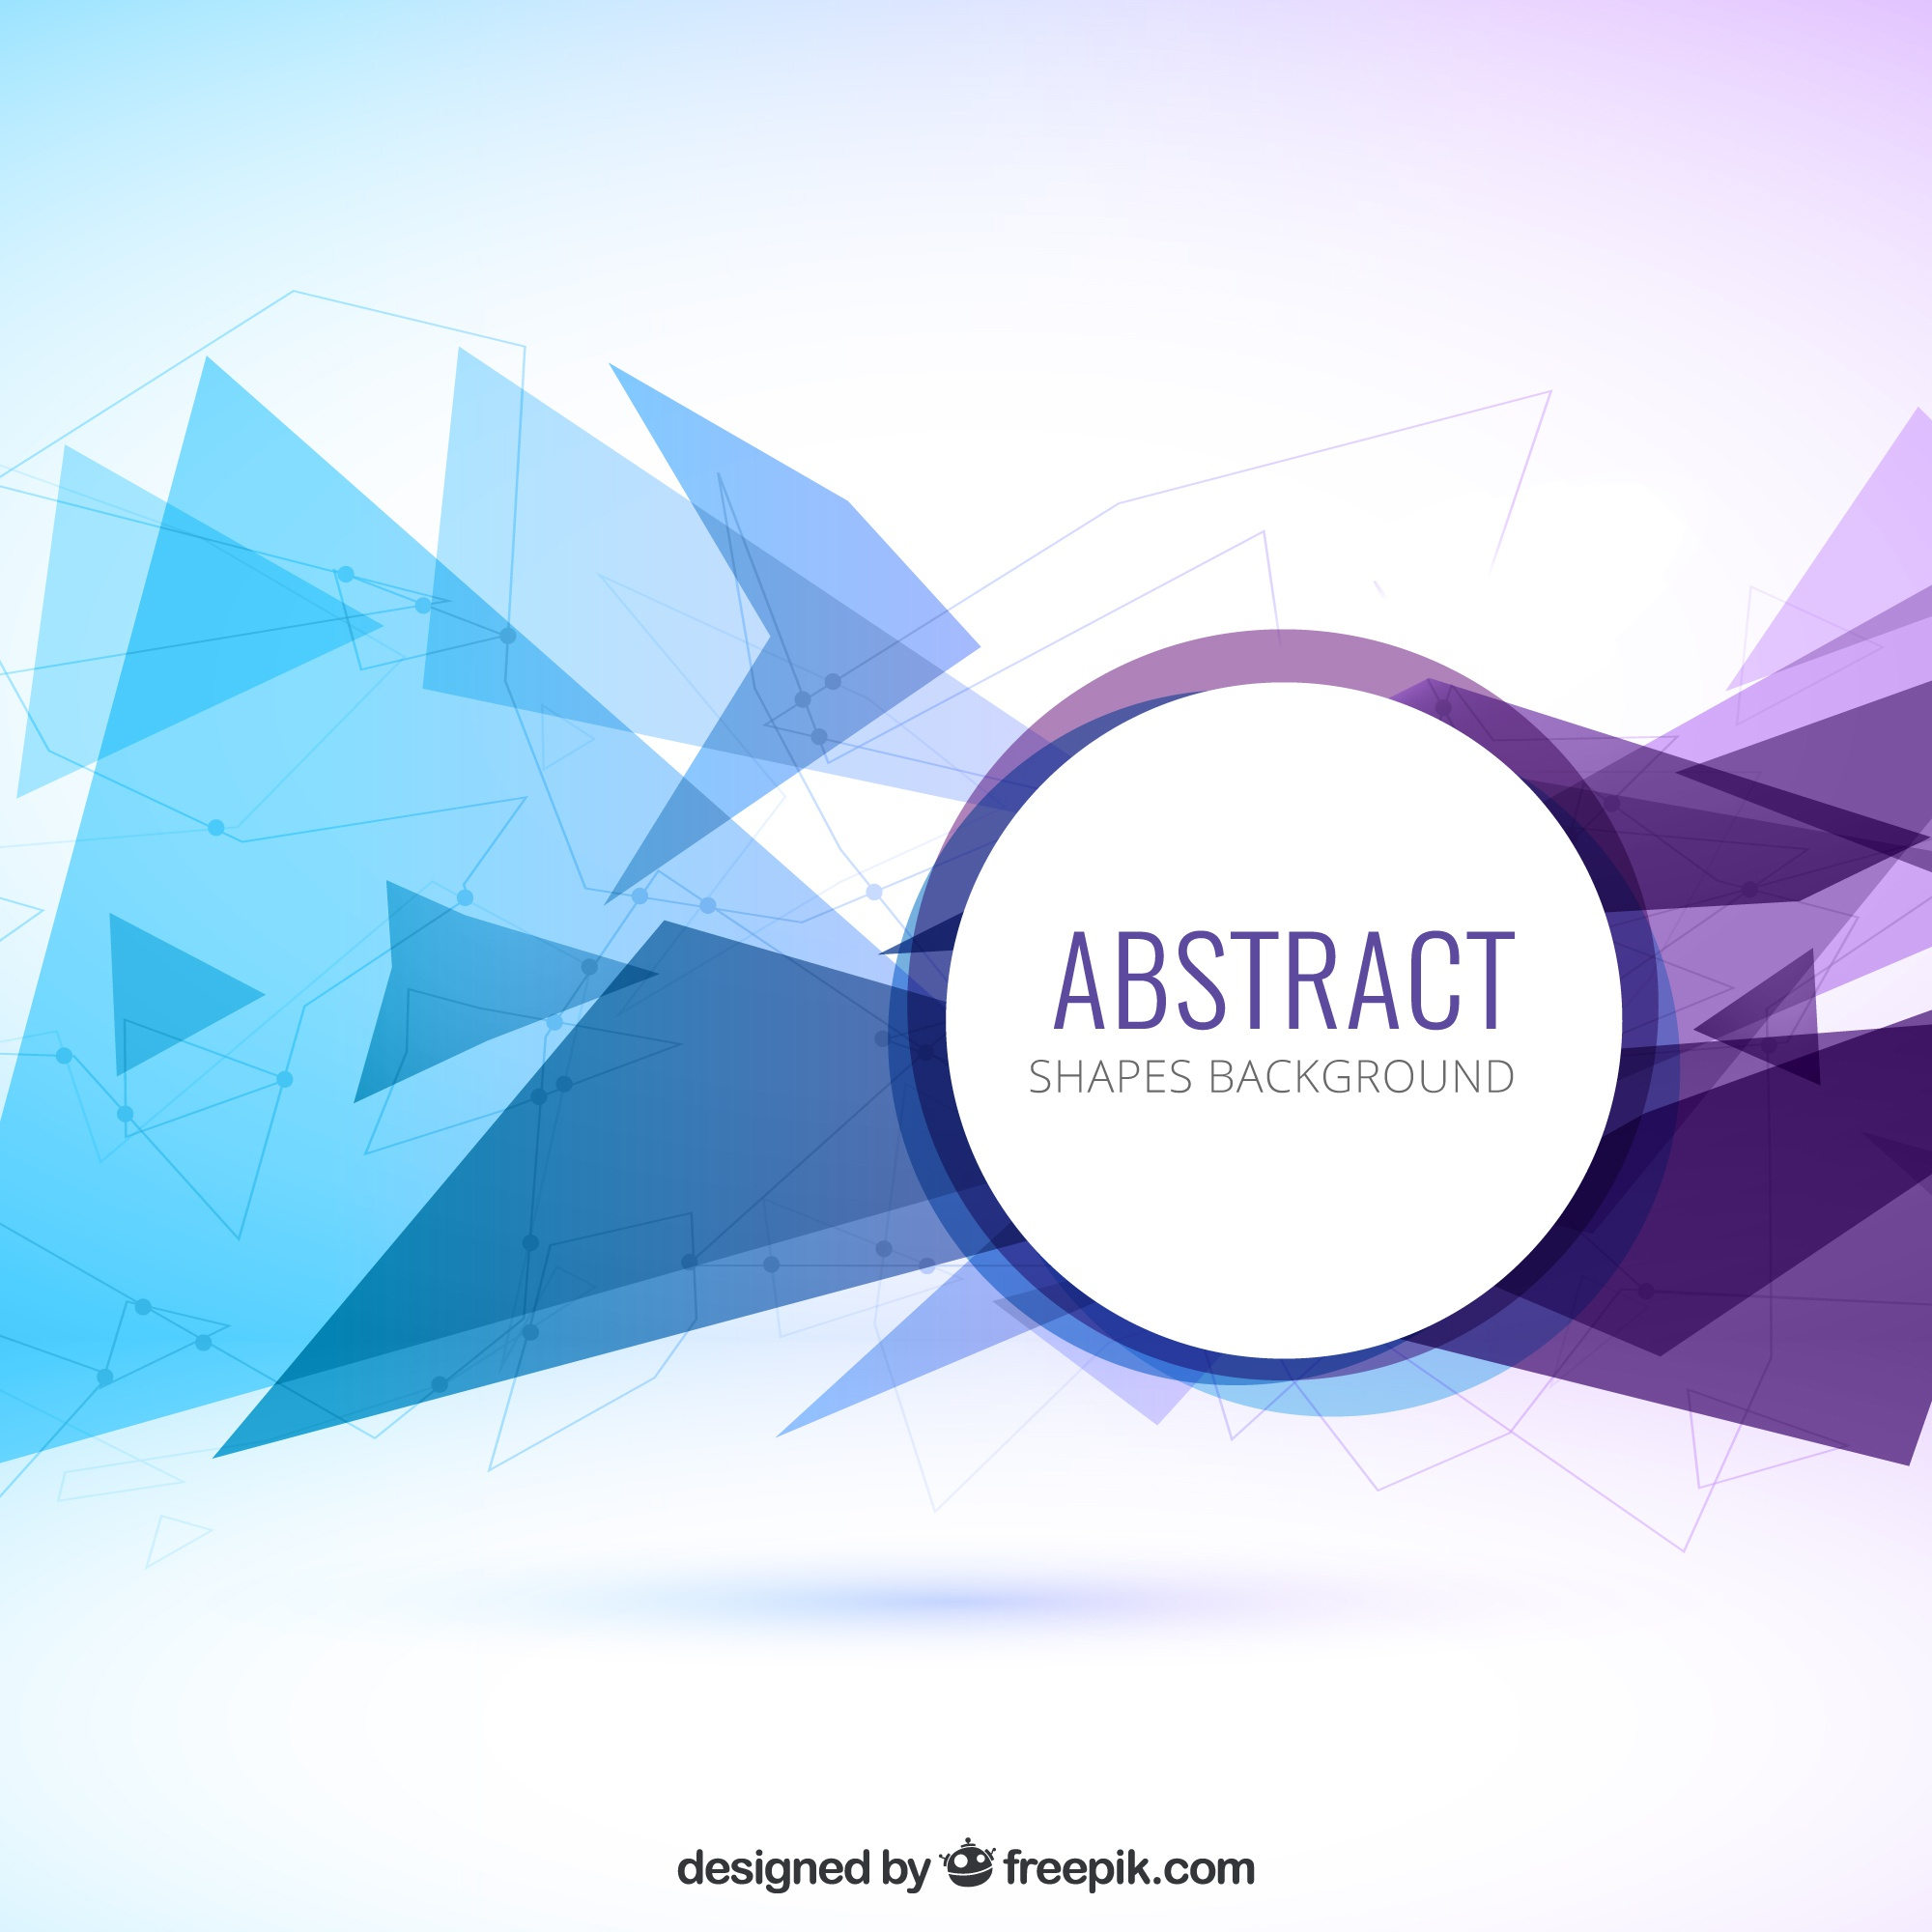 Abstract triangles background in blue and purple color